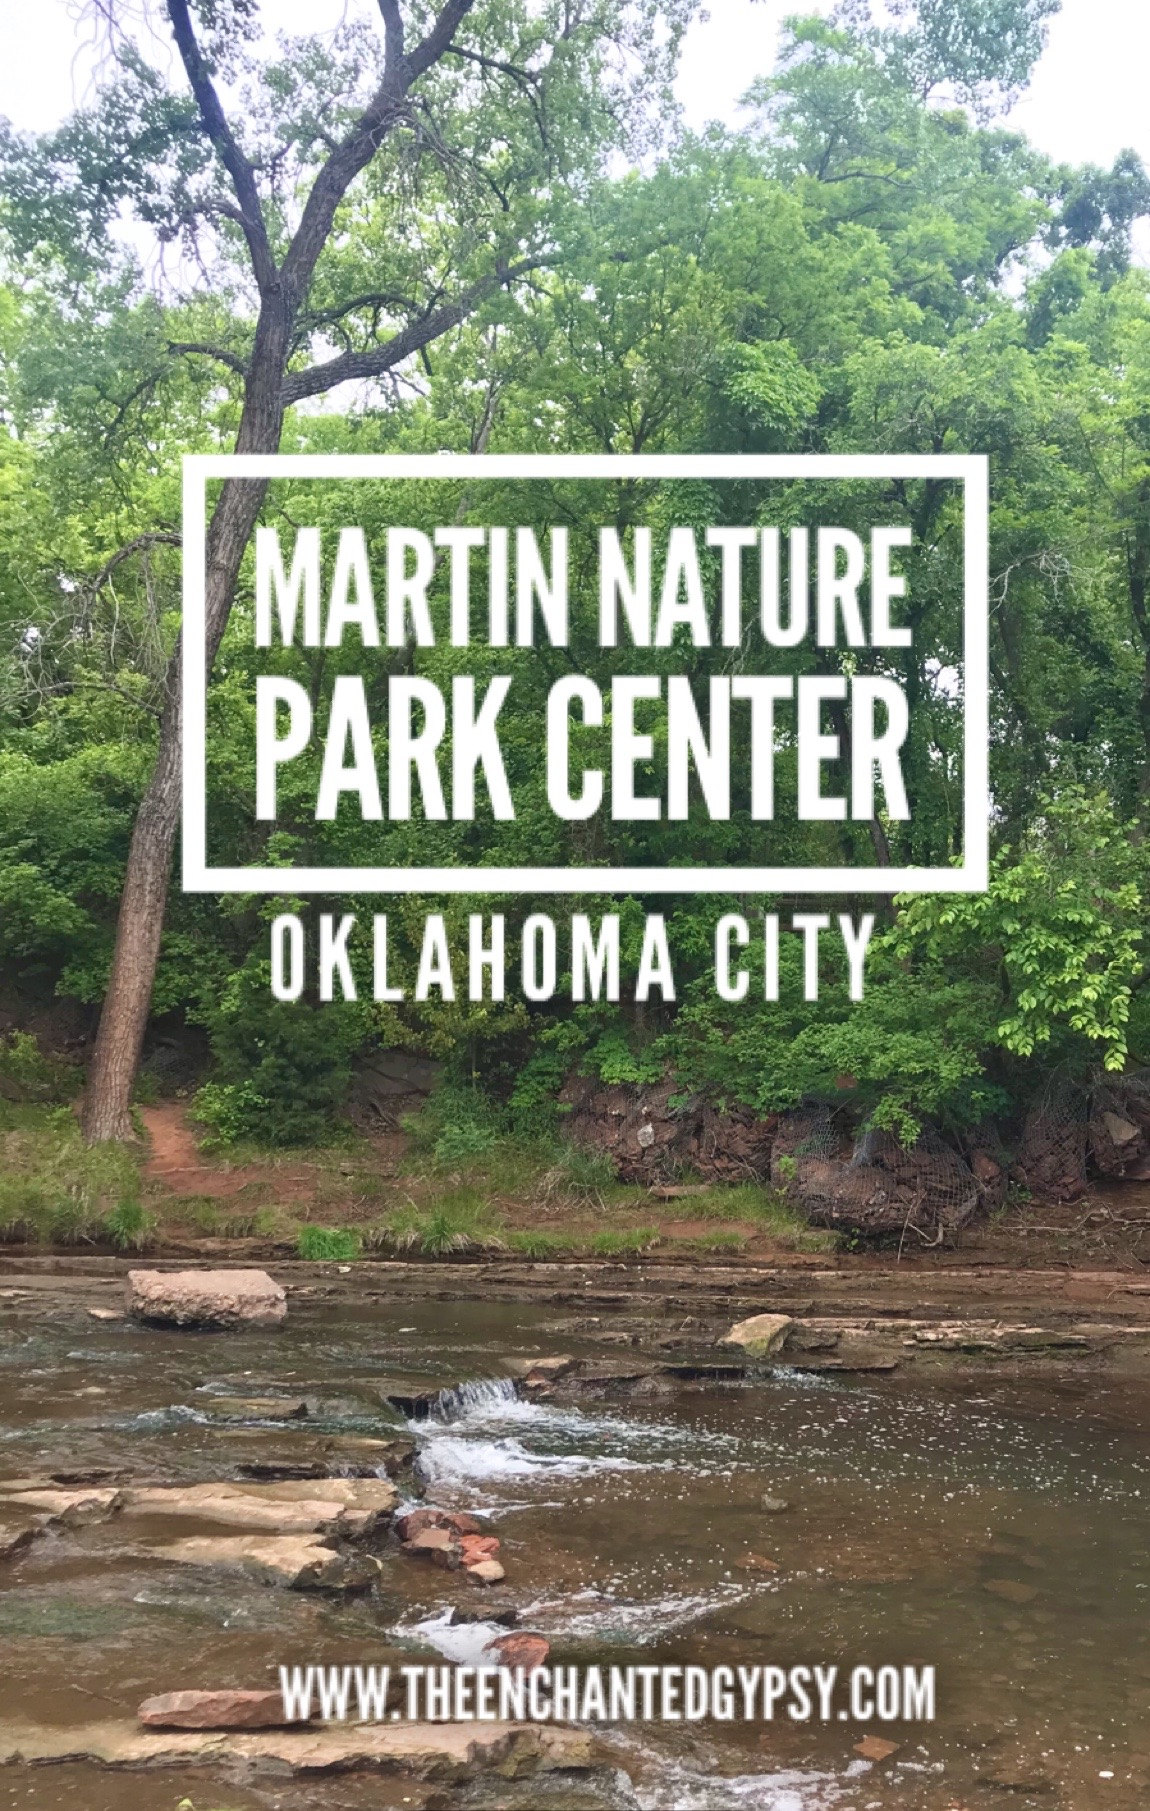 Martin Nature Park Center, Oklahoma City